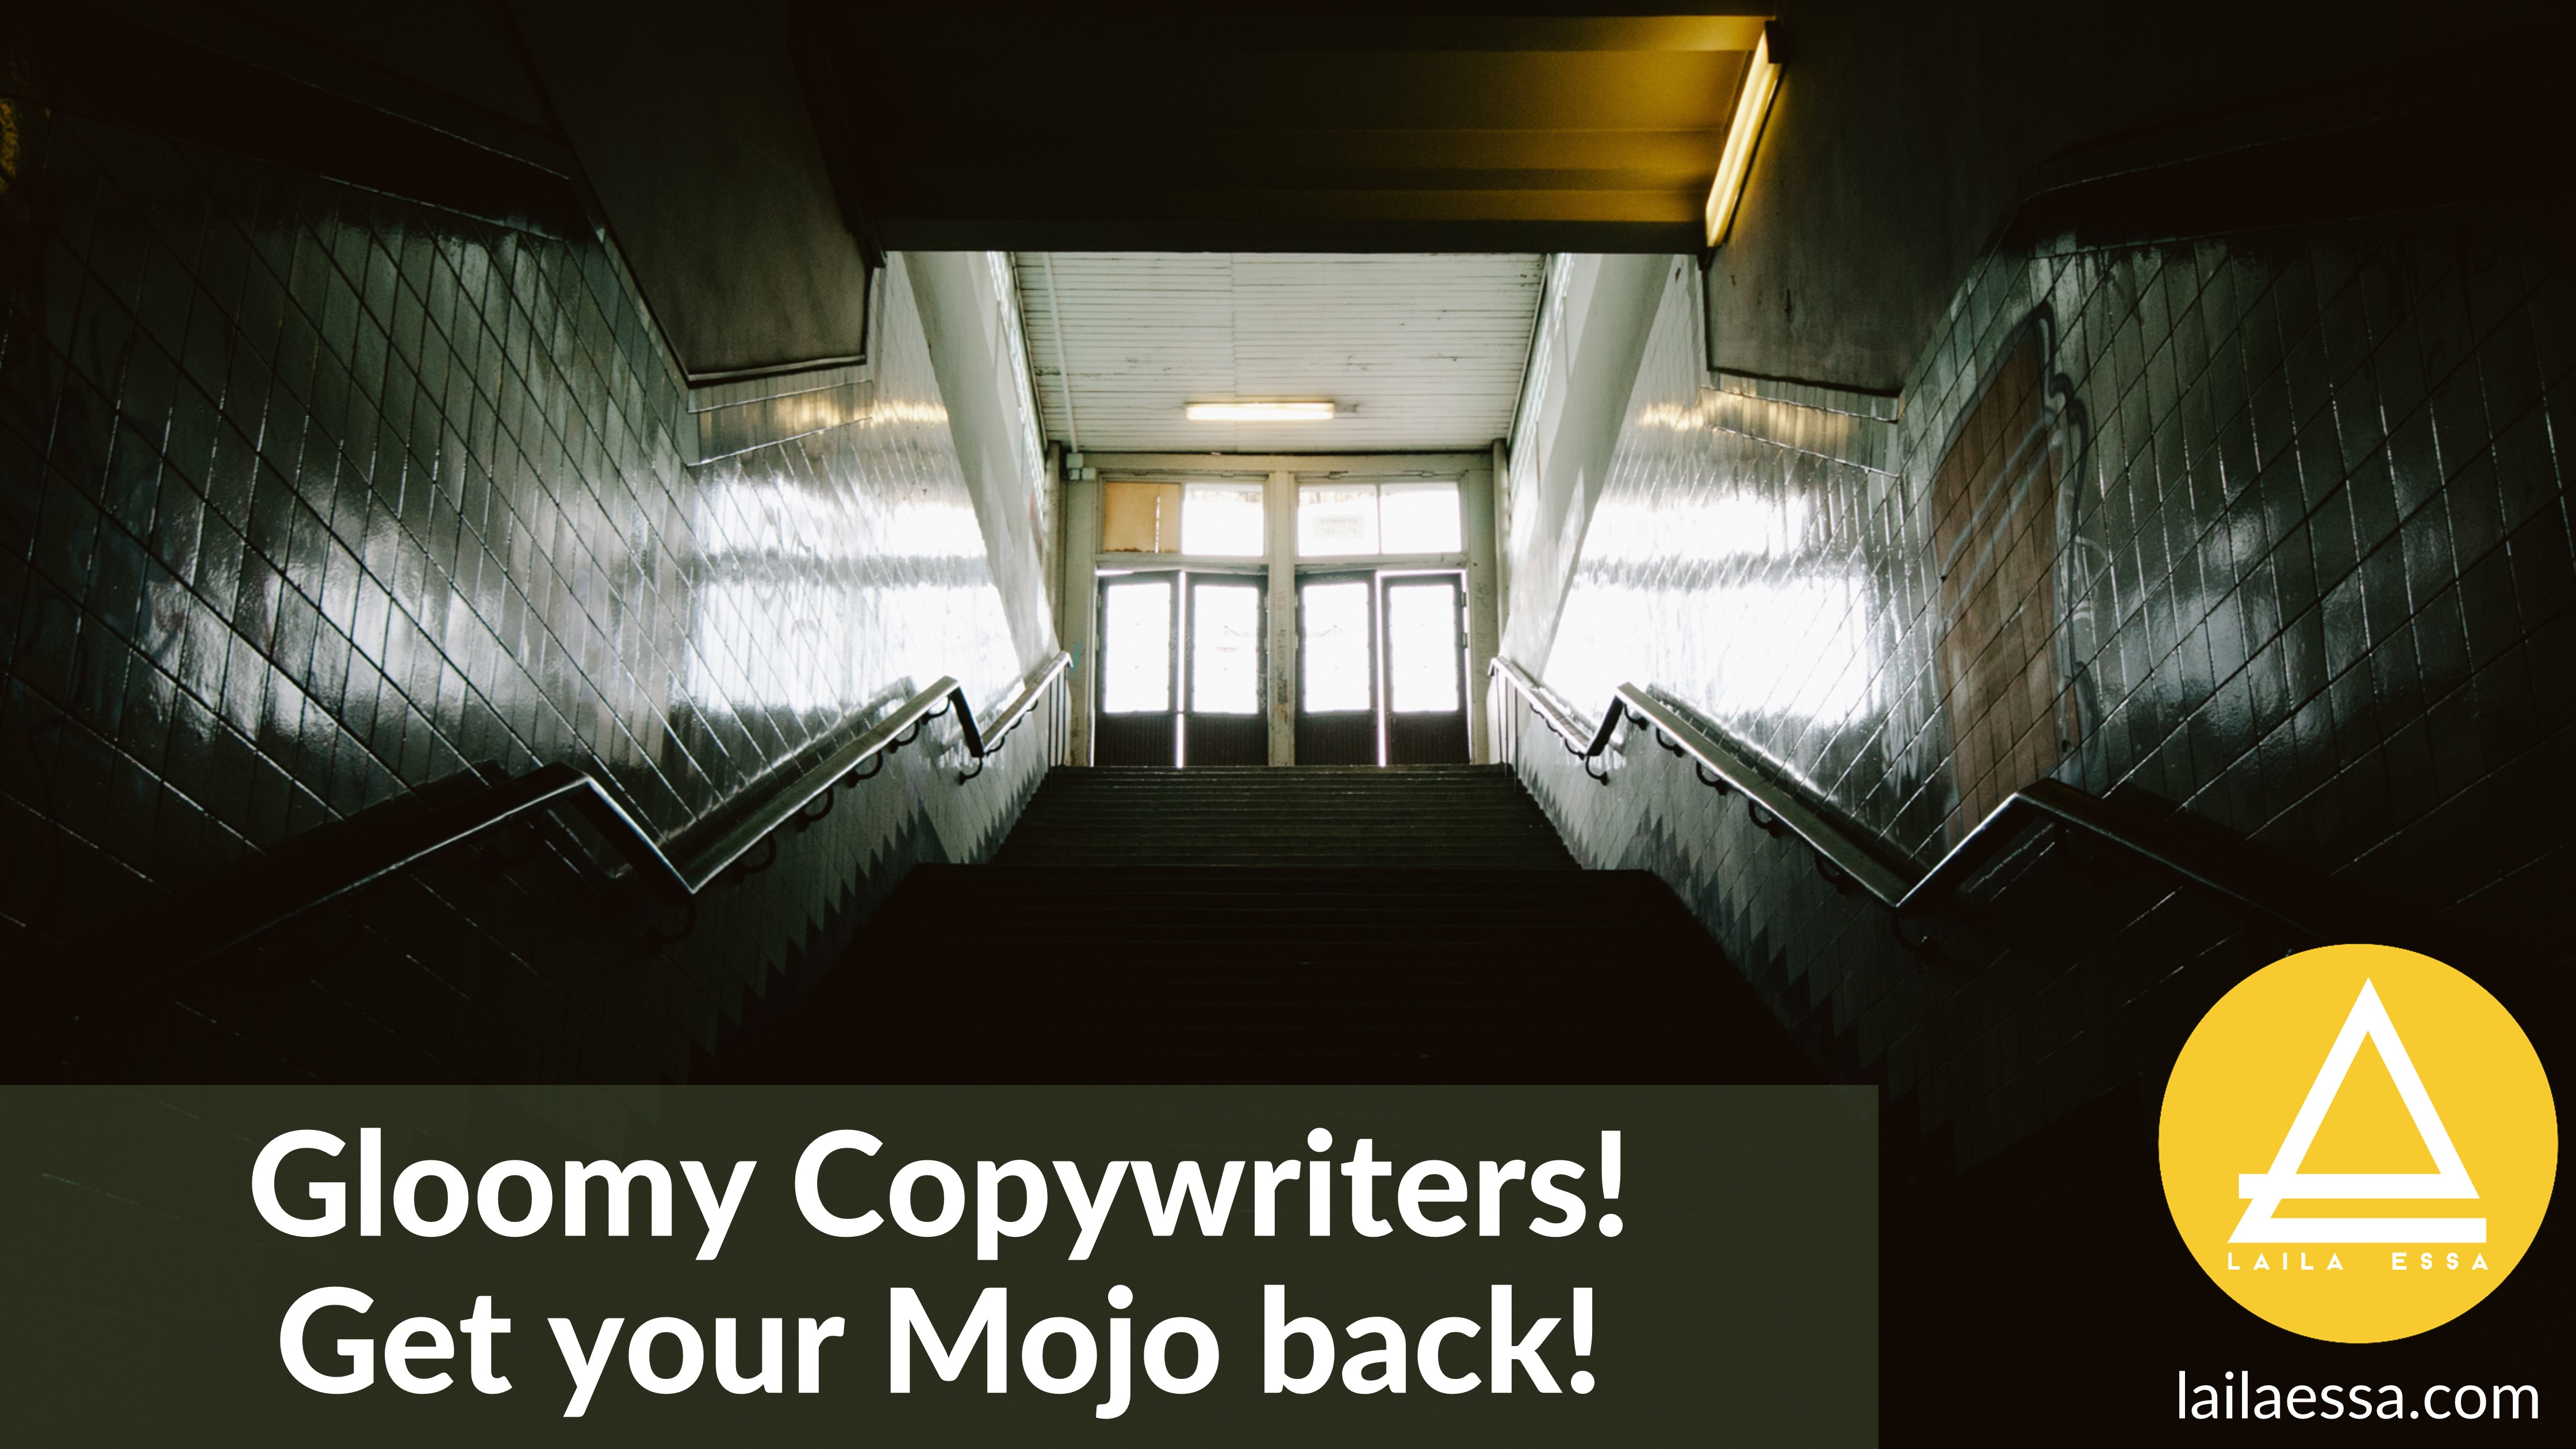 Tips and inspiration for copywriters